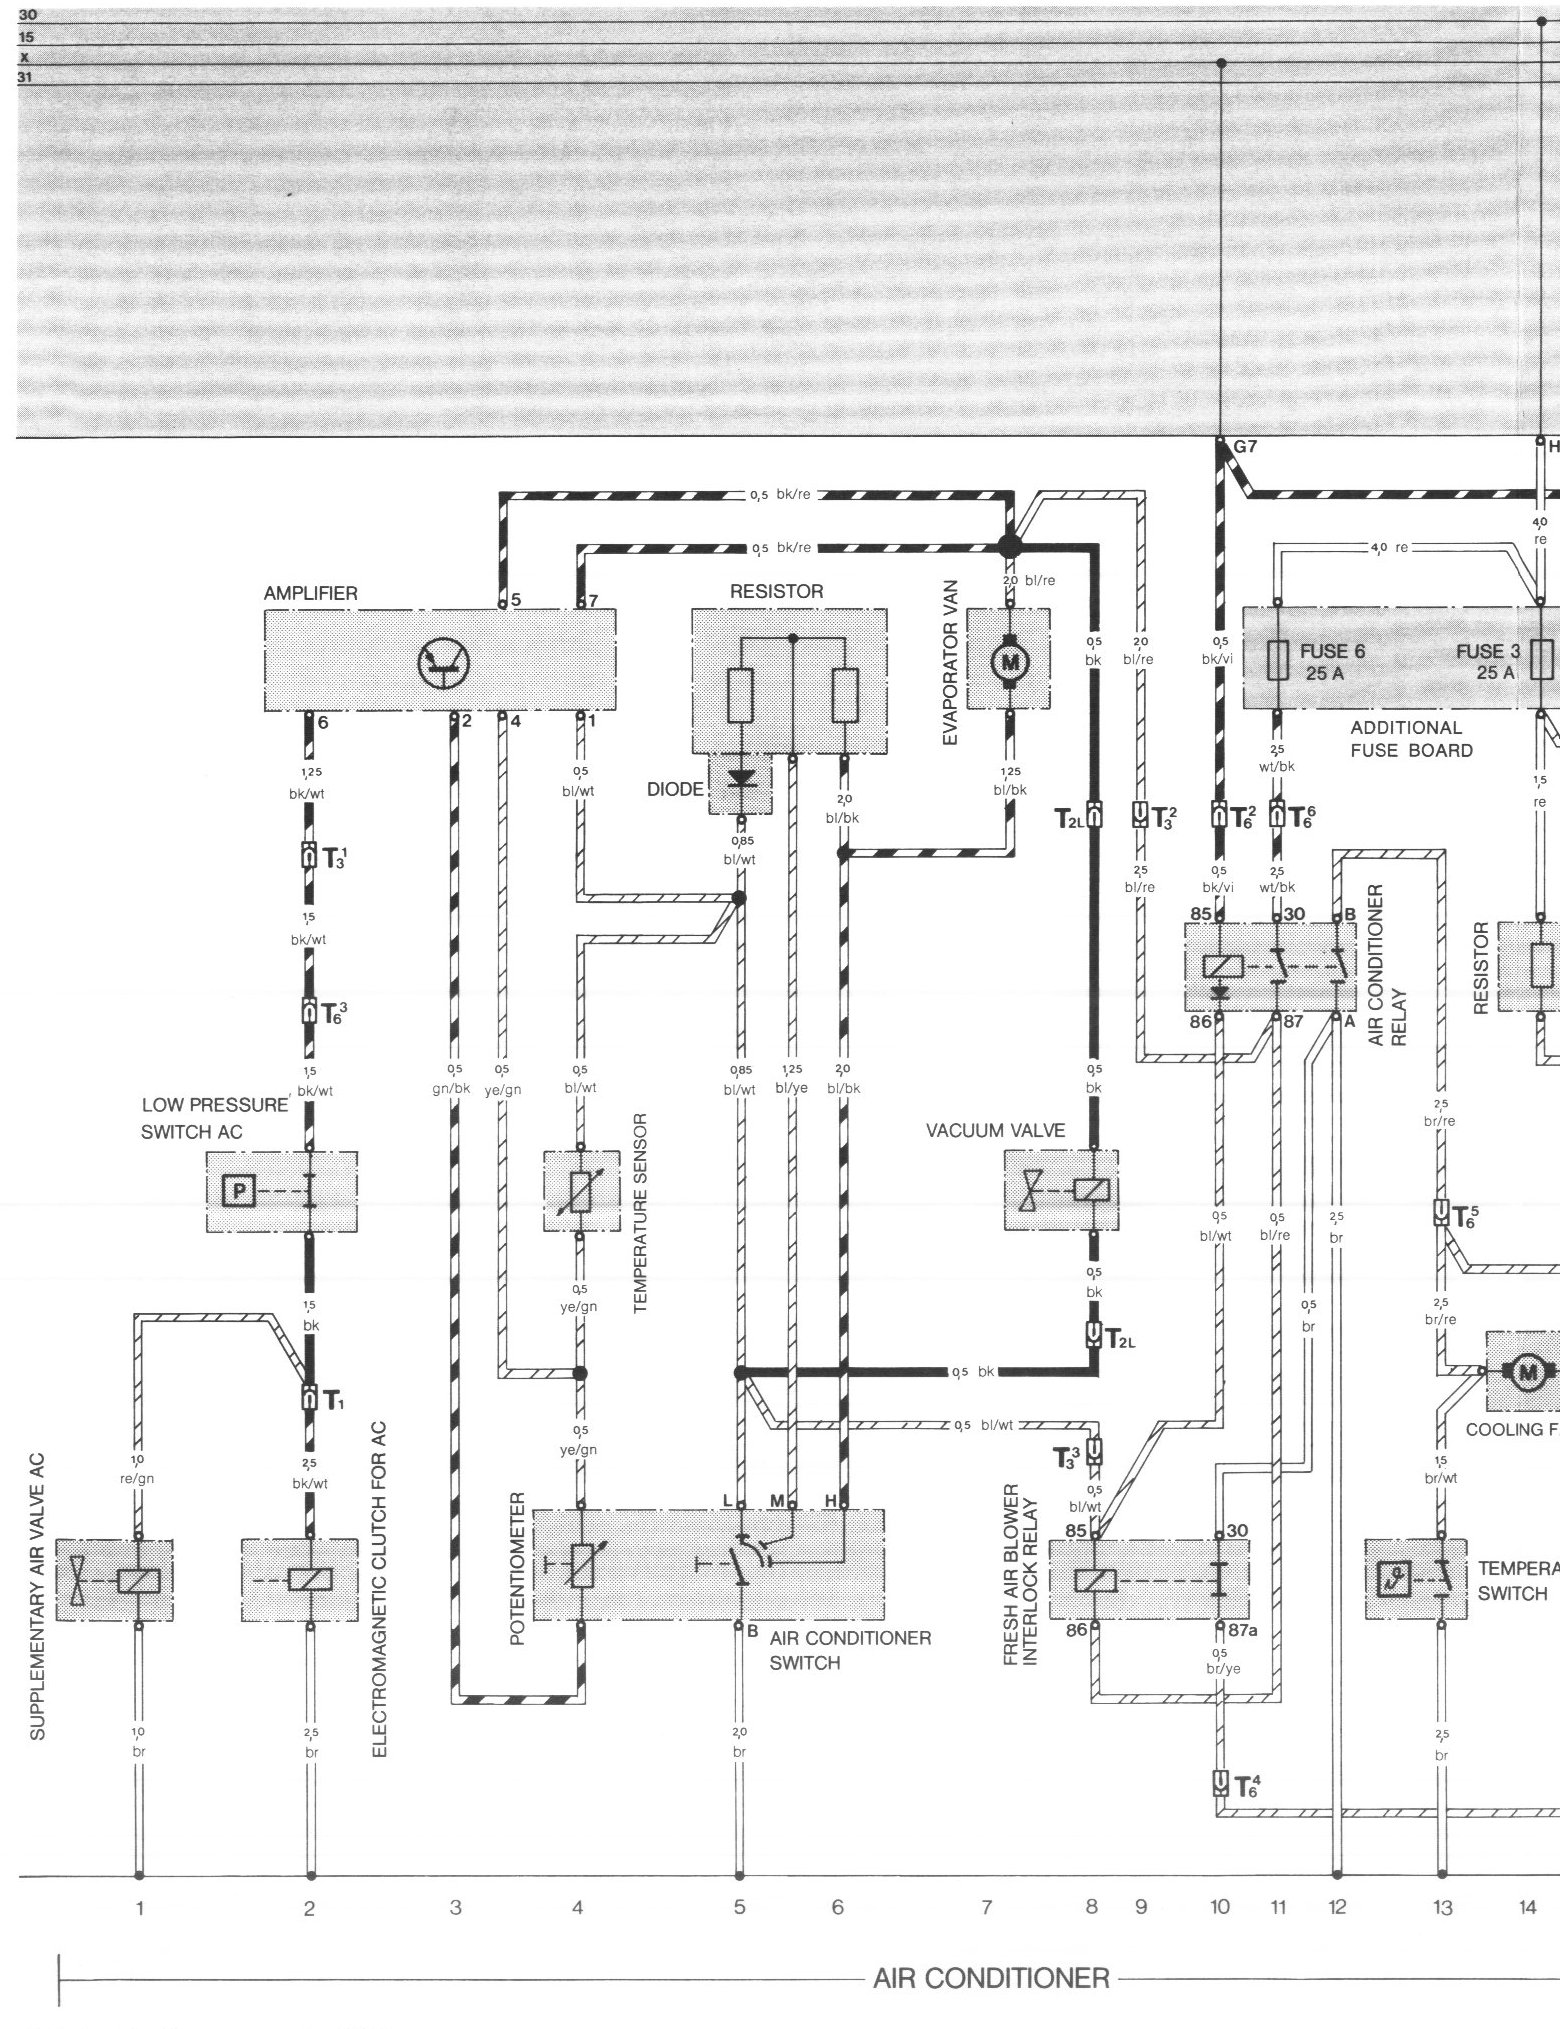 944_84_AC_1 pelican parts porsche 924 944 electrical diagrams 1983 porsche 944 fuse box diagram at mr168.co